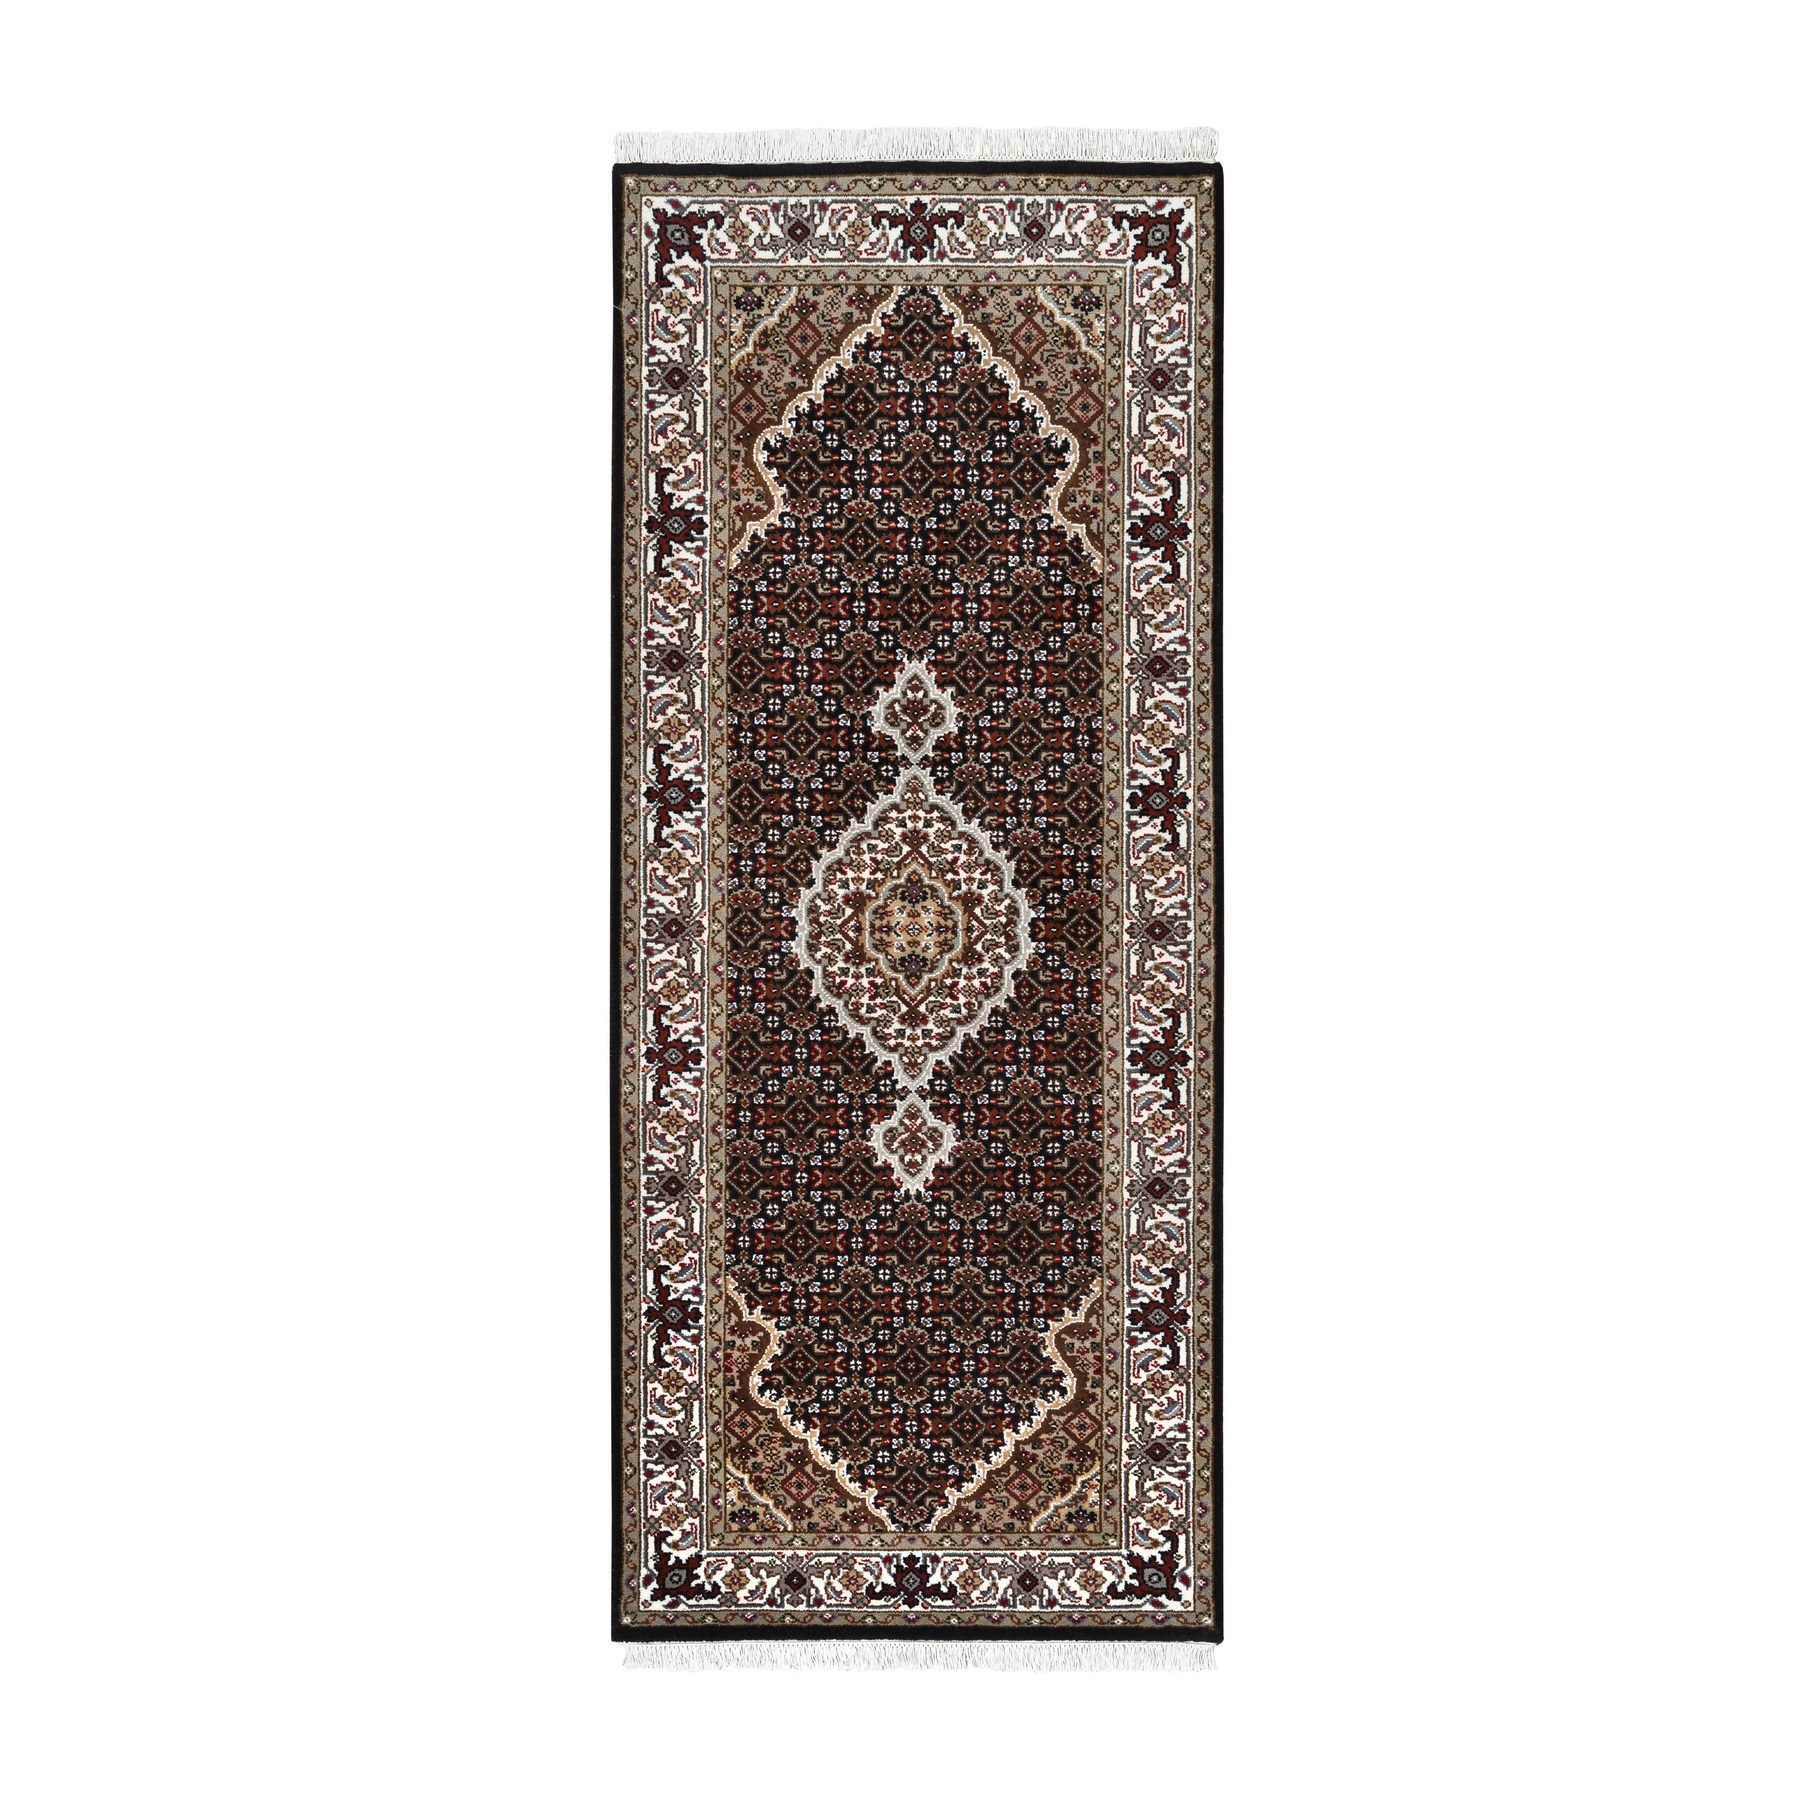 "2'8""x6'5"" Hand Woven Fish Medallion Design Tabriz Mahi Black Wool And Silk Oriental Runner Rug"